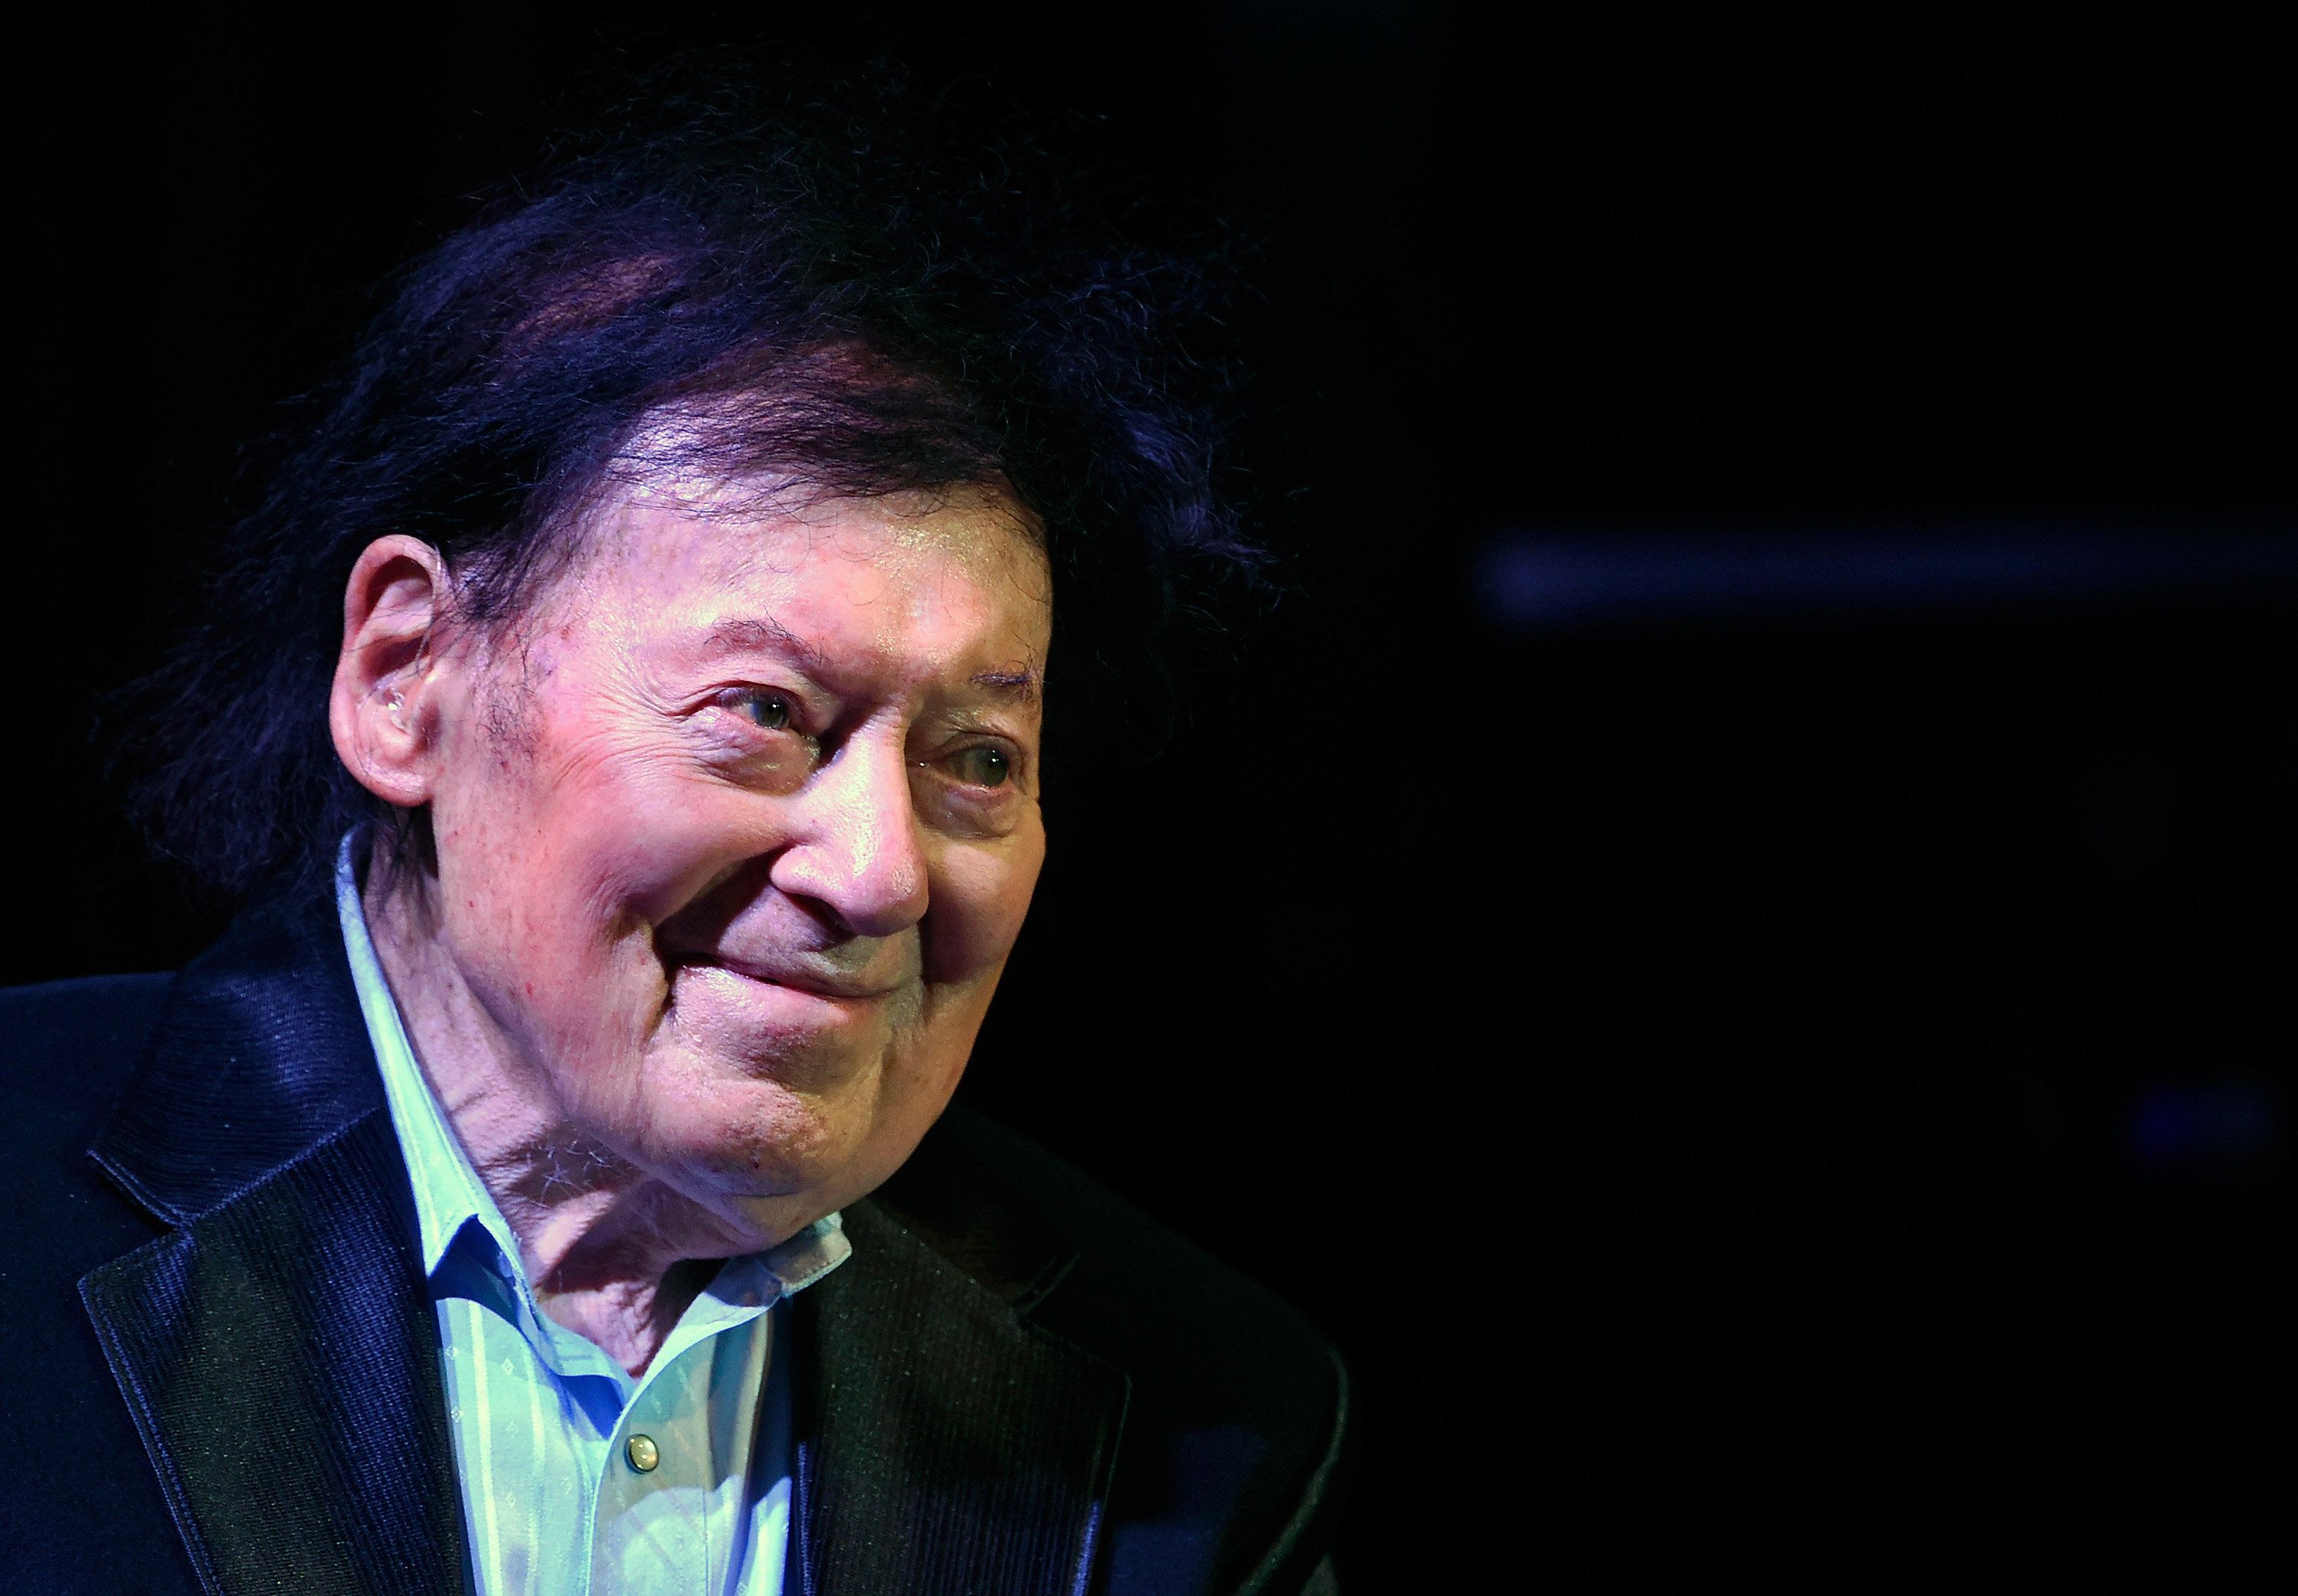 LAS VEGAS, NV - MARCH 23:  Comedian/actor Marty Allen performs during a show celebrating his 95th birthday at the South Point Hotel & Casino on March 23, 2017 in Las Vegas, Nevada.  (Photo by David Becker/Getty Images)